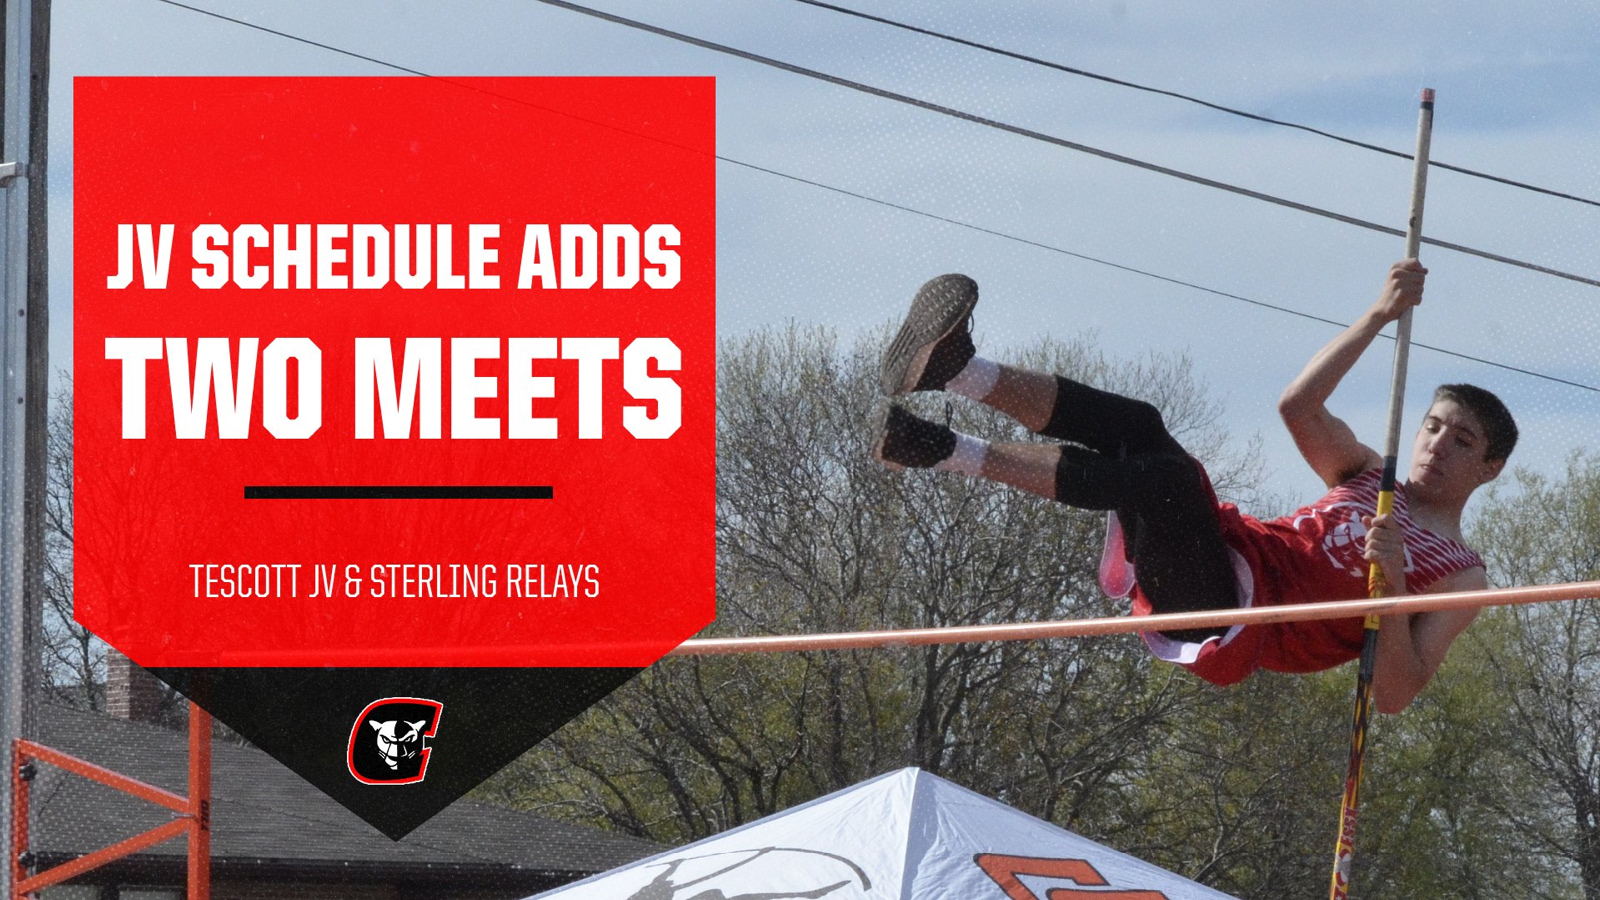 JV Schedule Change: Two meets added